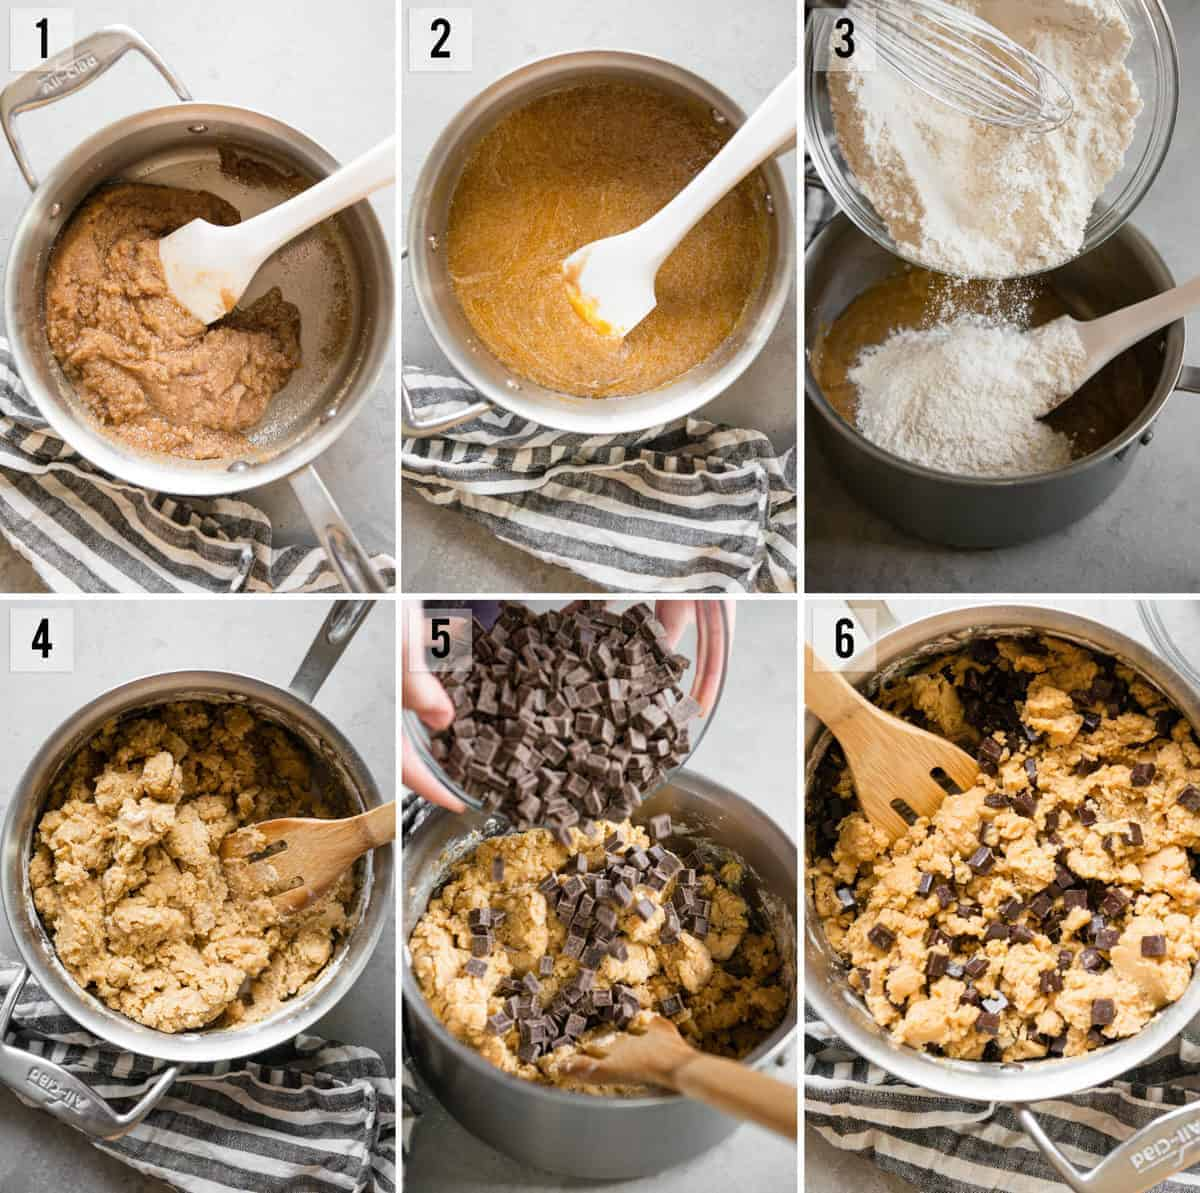 step by step process photos of how to make chocolate chip cookies